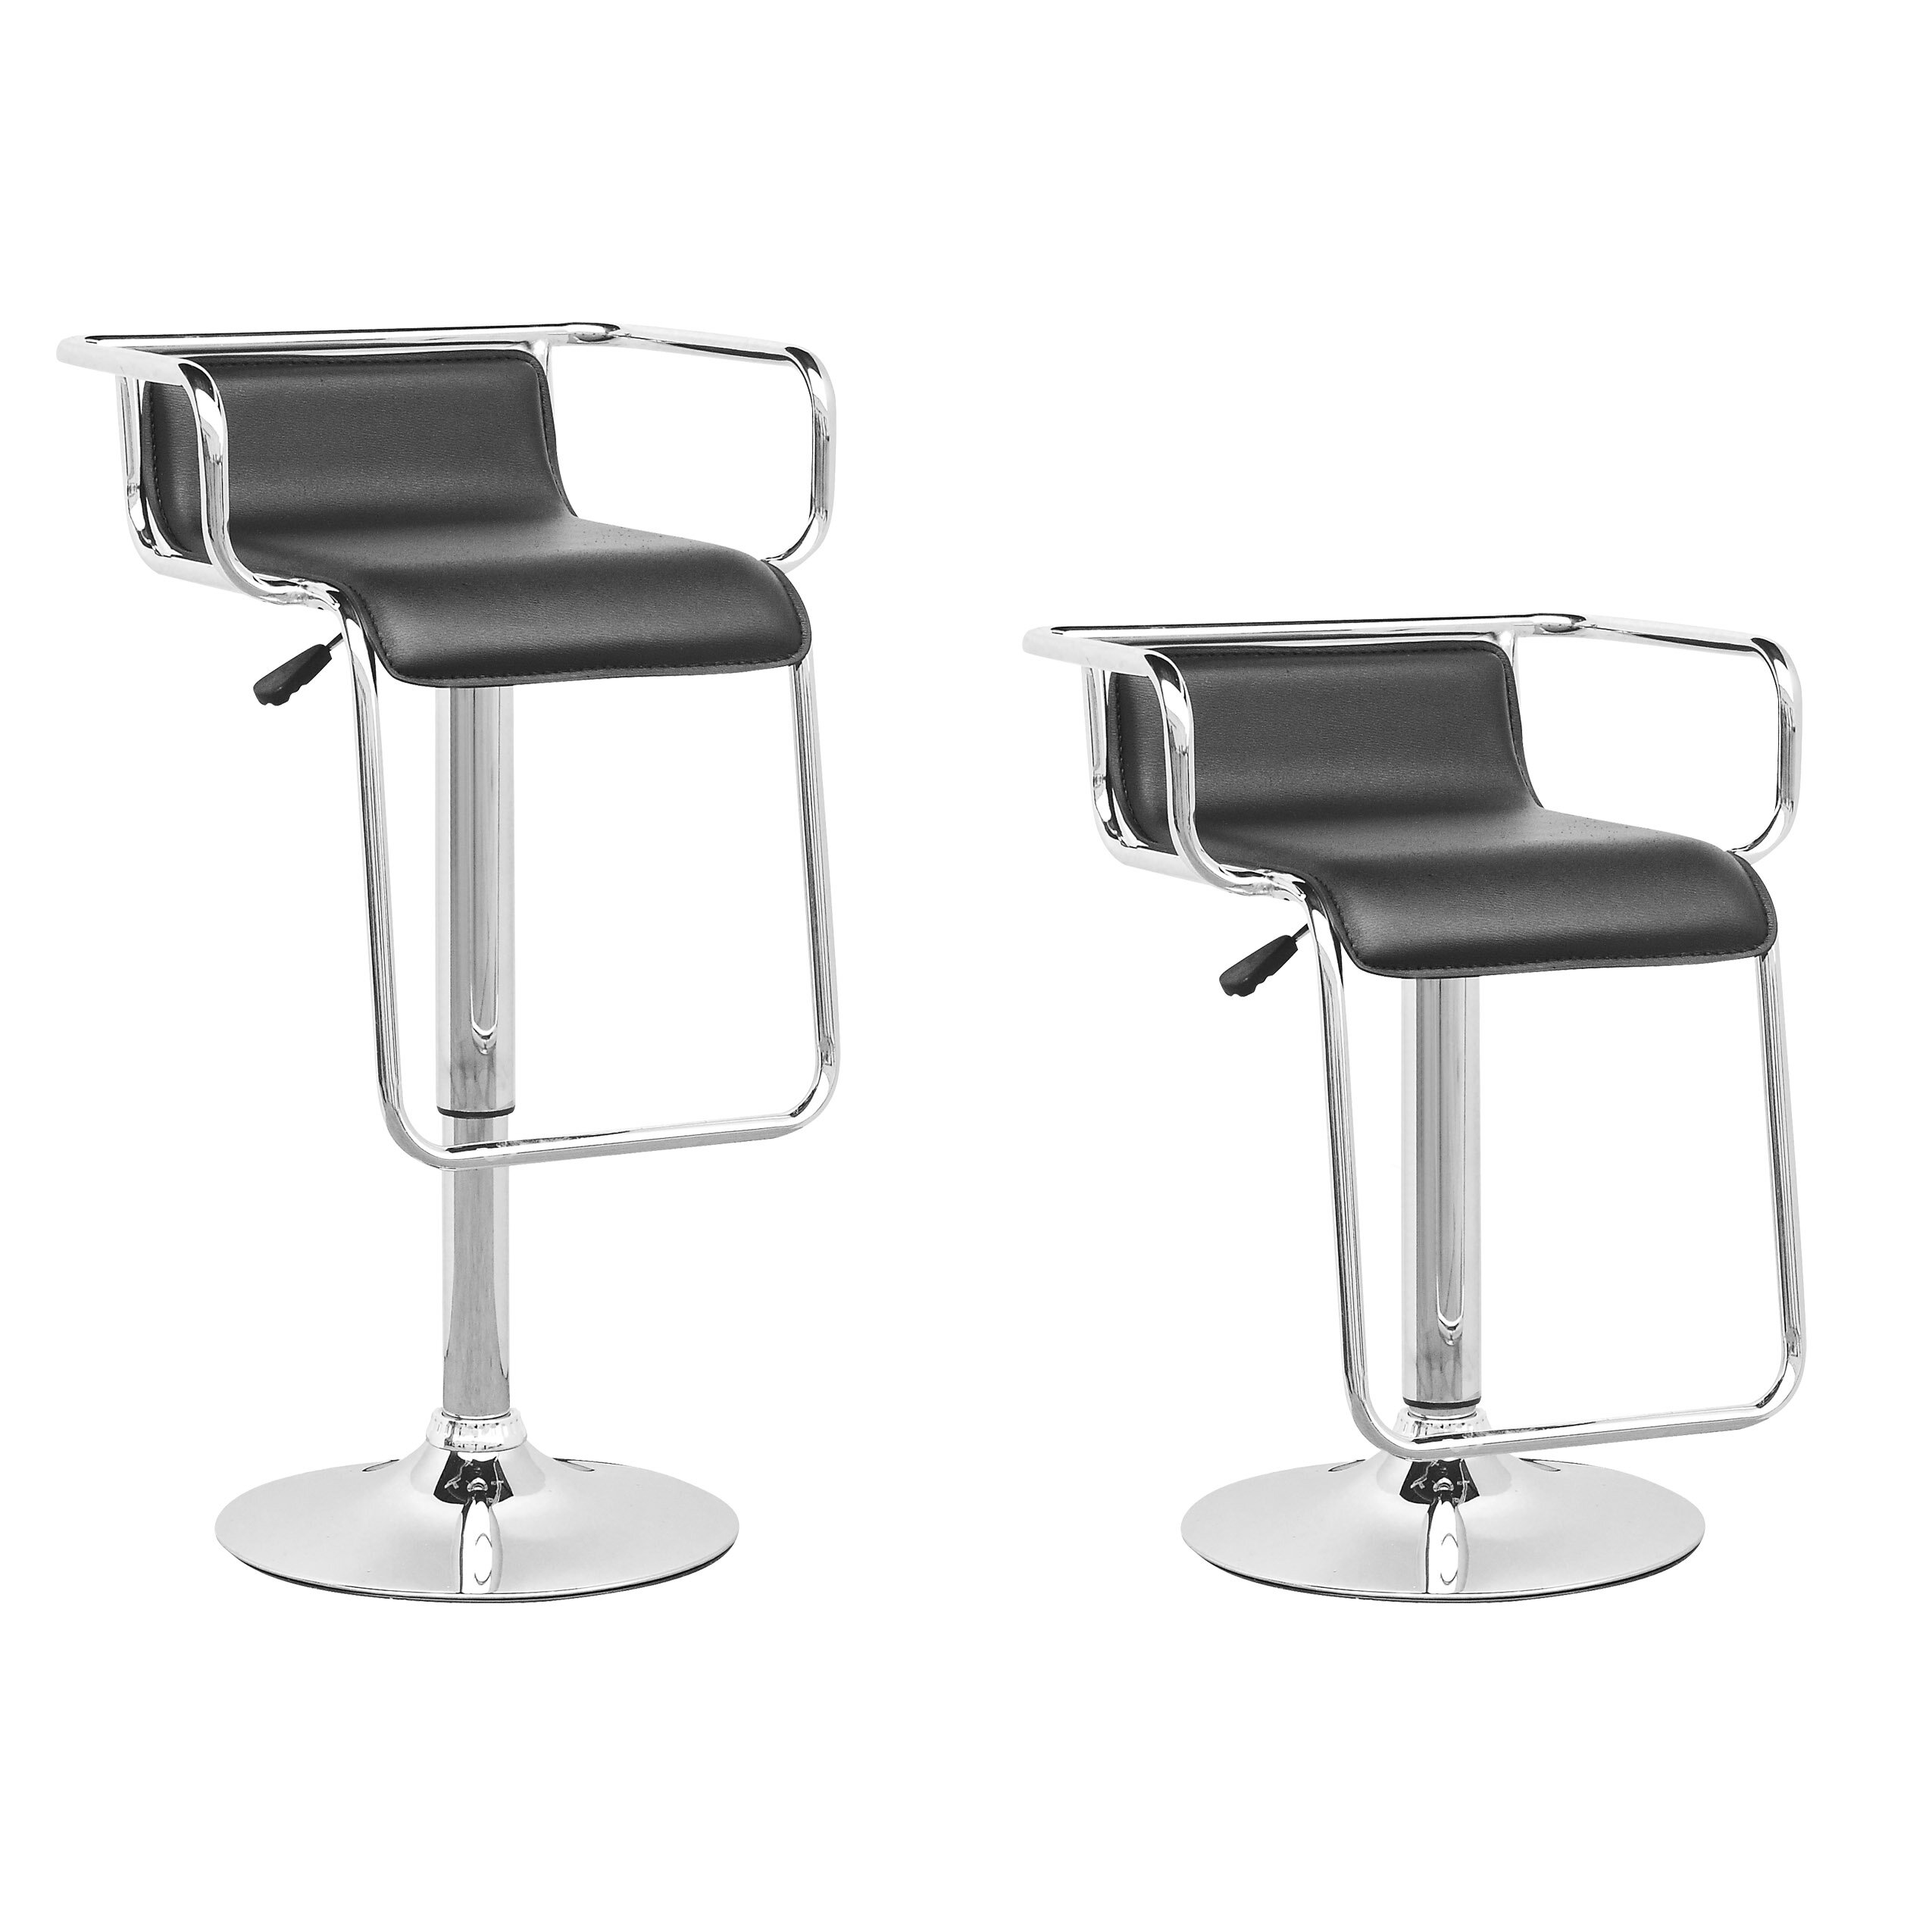 images of adjustable height bar stools